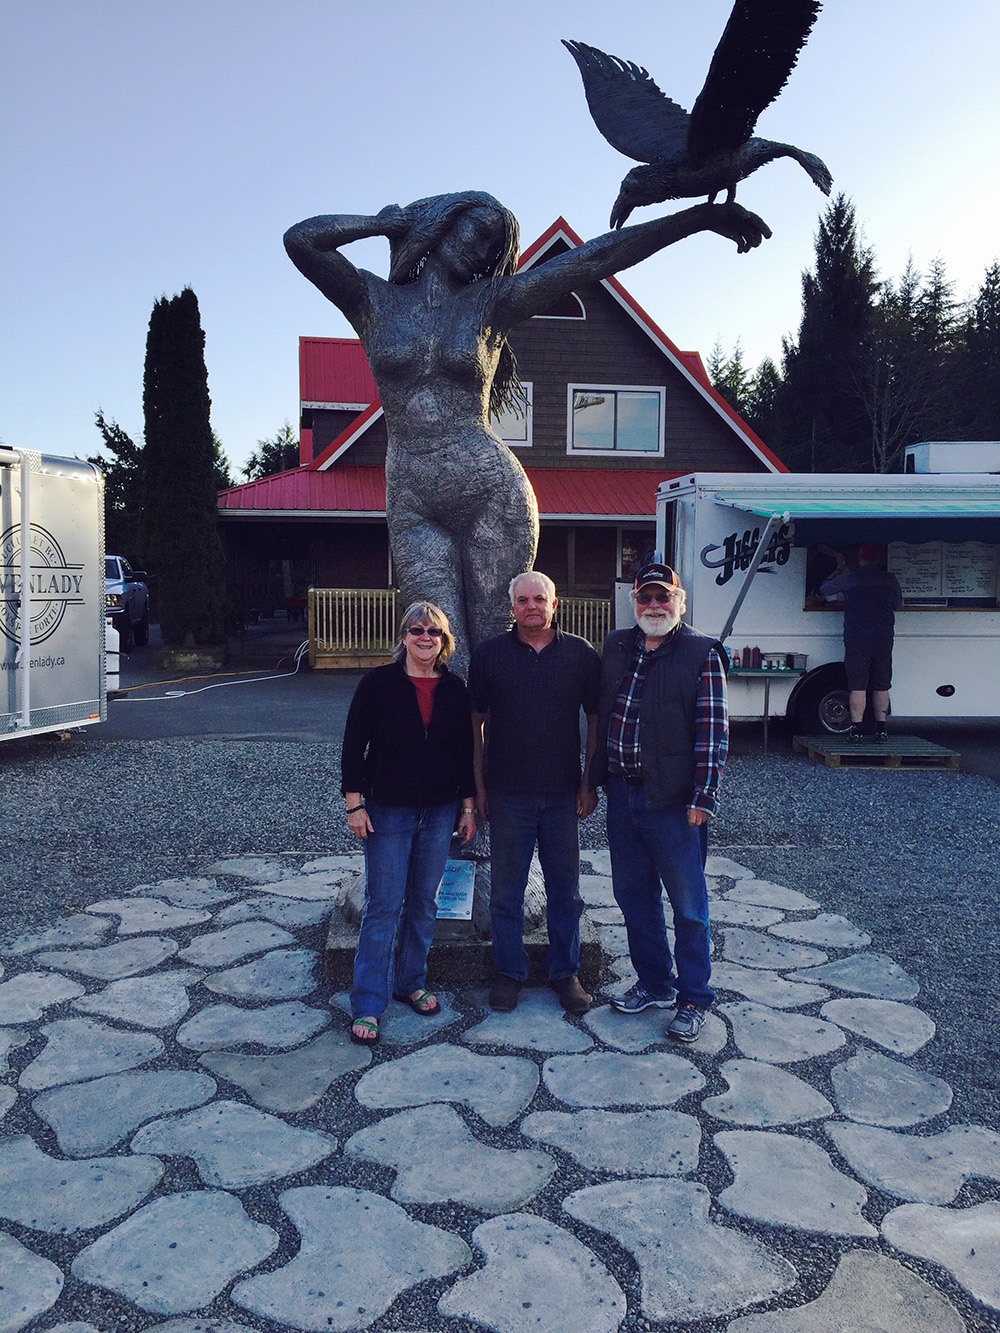 Mike Camp returns to Ucluelet